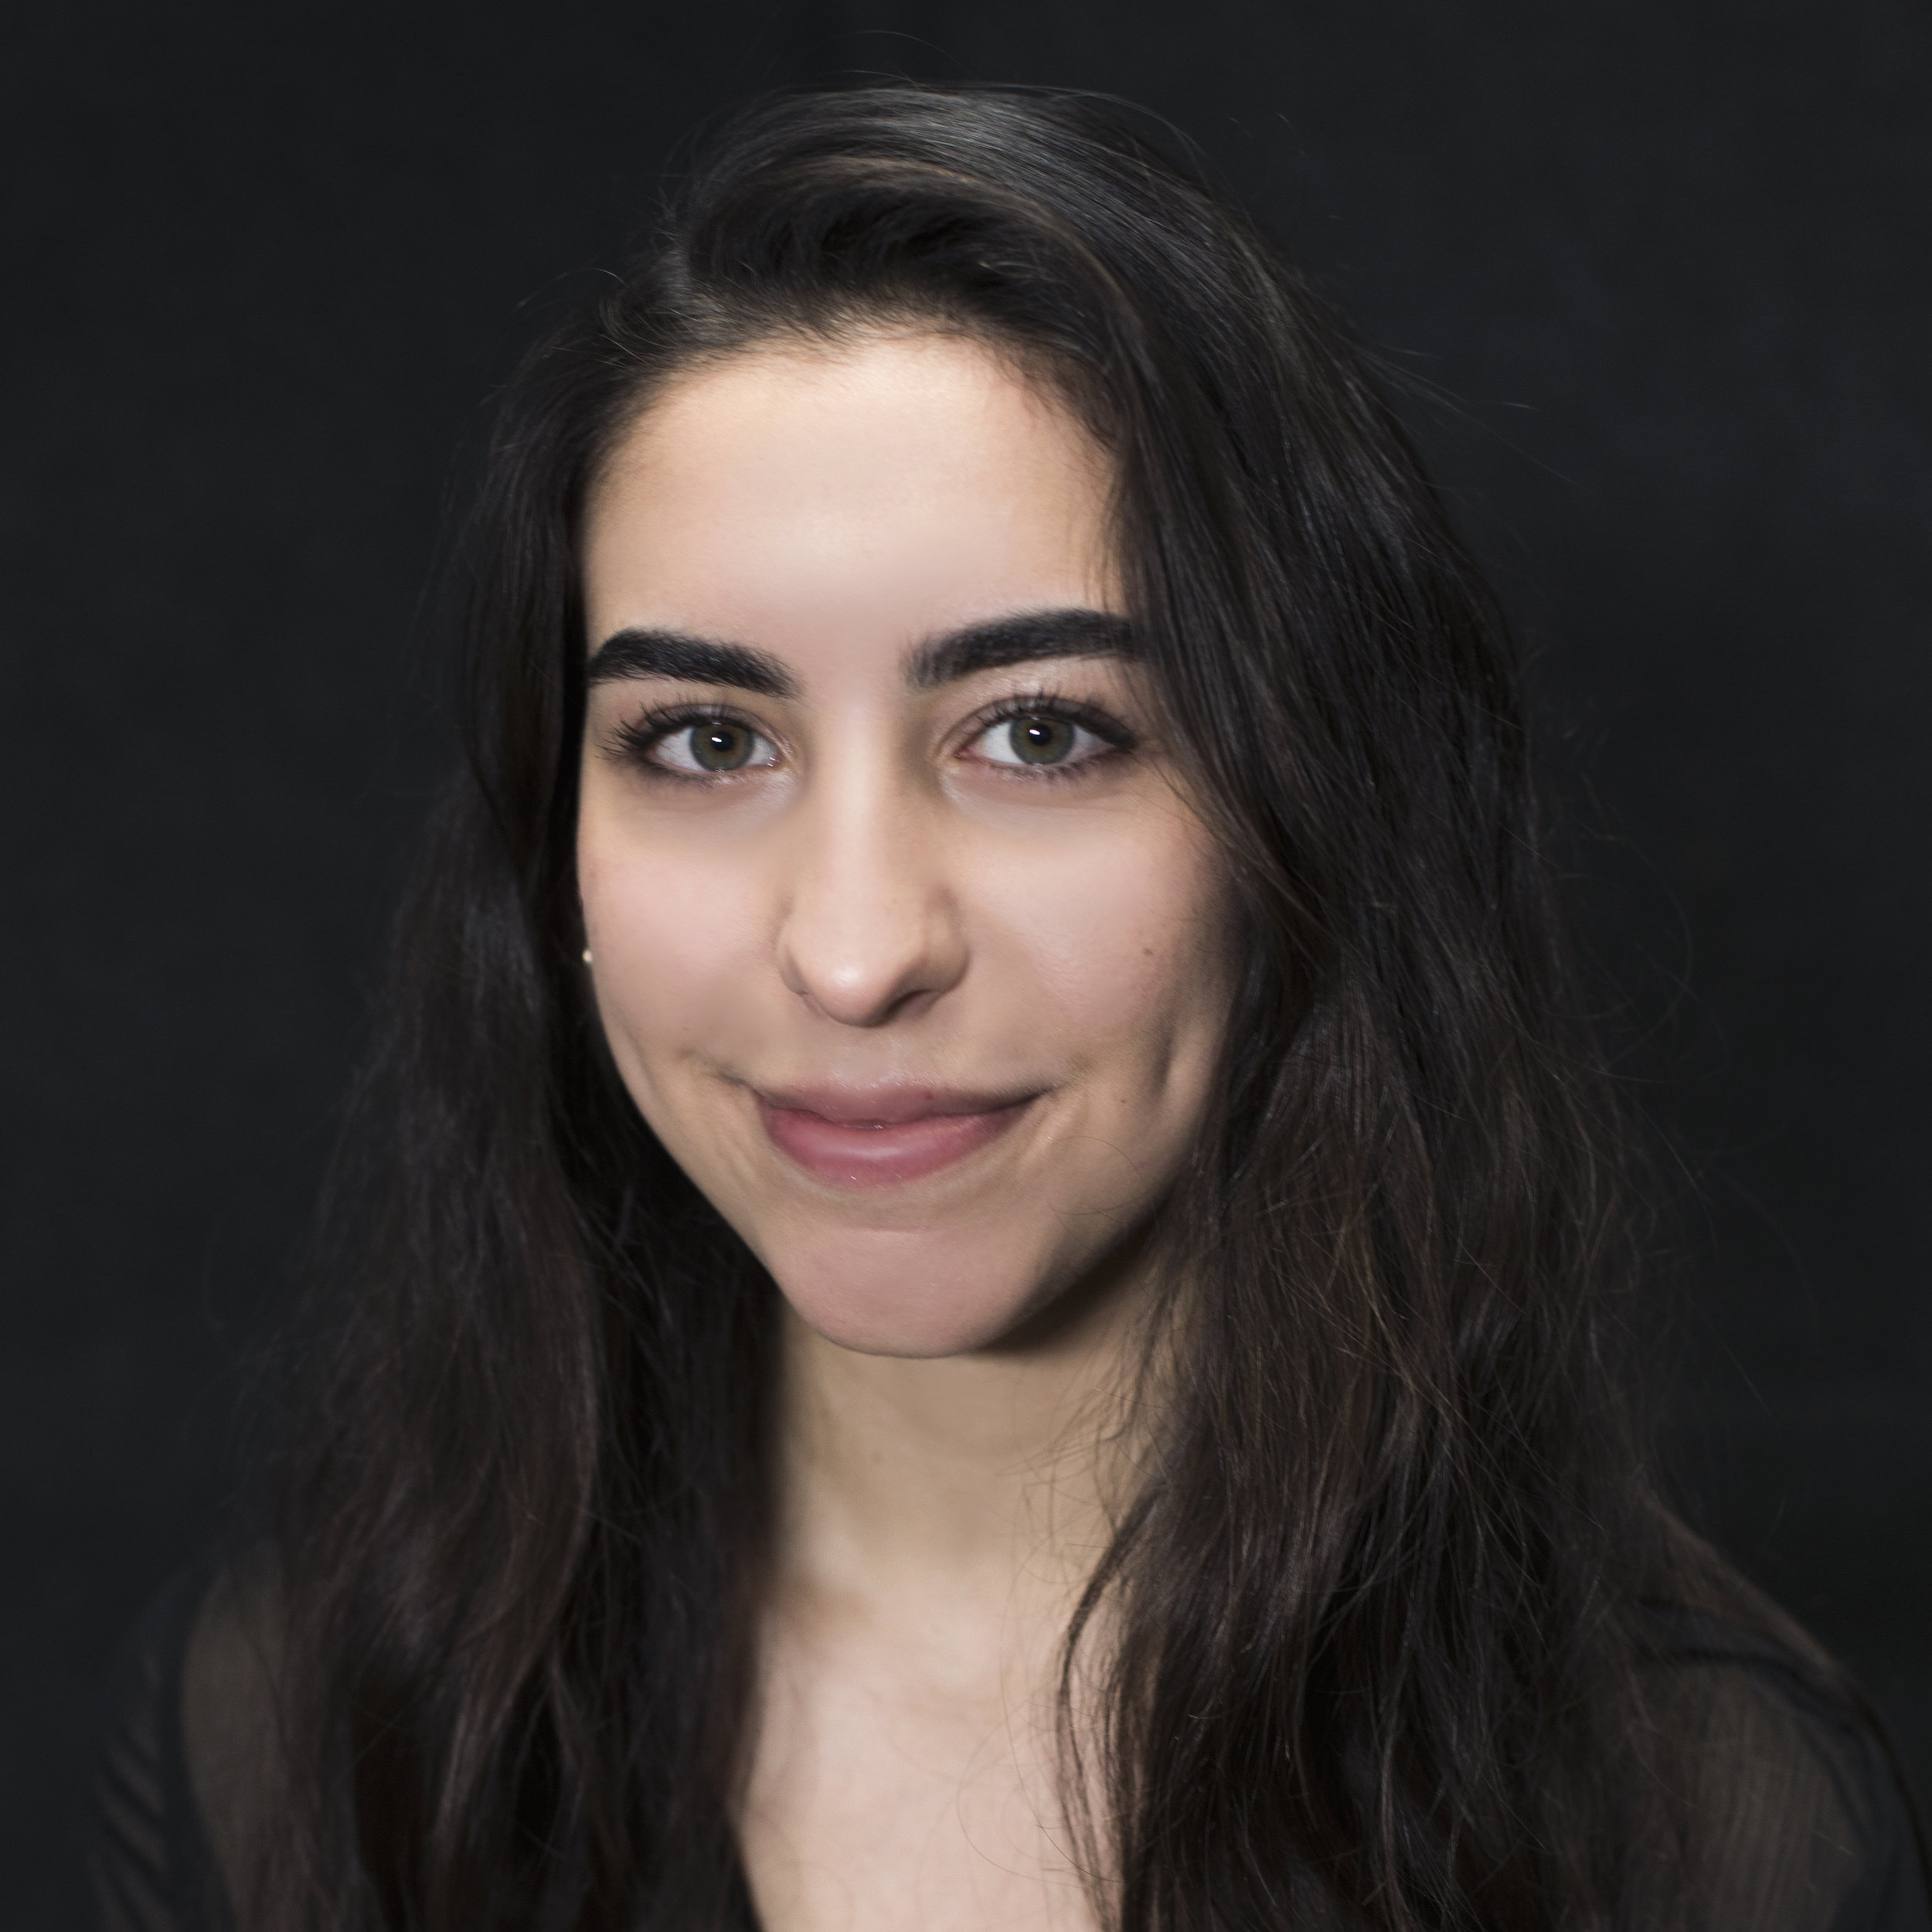 Ayah Zeineddine | Assistant Director & Co-Writer   Ayah is a fourth-year Media Production student with a double concentration in Screenwriting and Video Production. She has a passion for storytelling in both horror and comedy genres. She hopes to work as a television writer/director in the future.